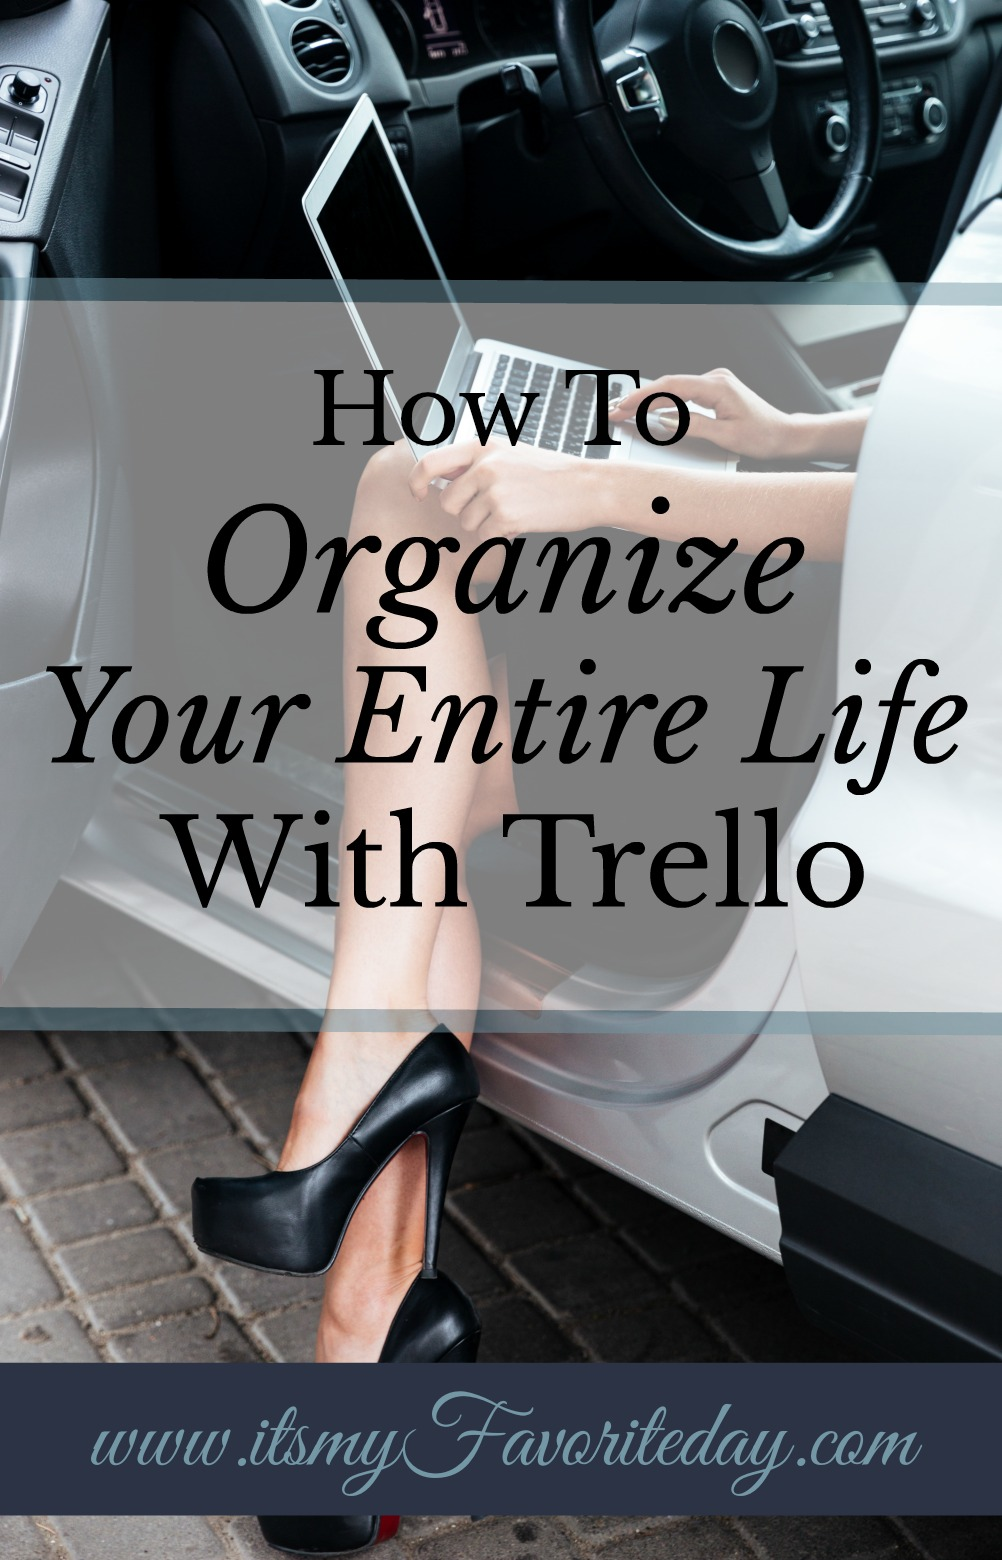 If you don't know, Trello is an unbelievable FREE tool that allows you to organize and simplify your entire life. Start taking control of your time with Trello. Click here to find out how Trello works.